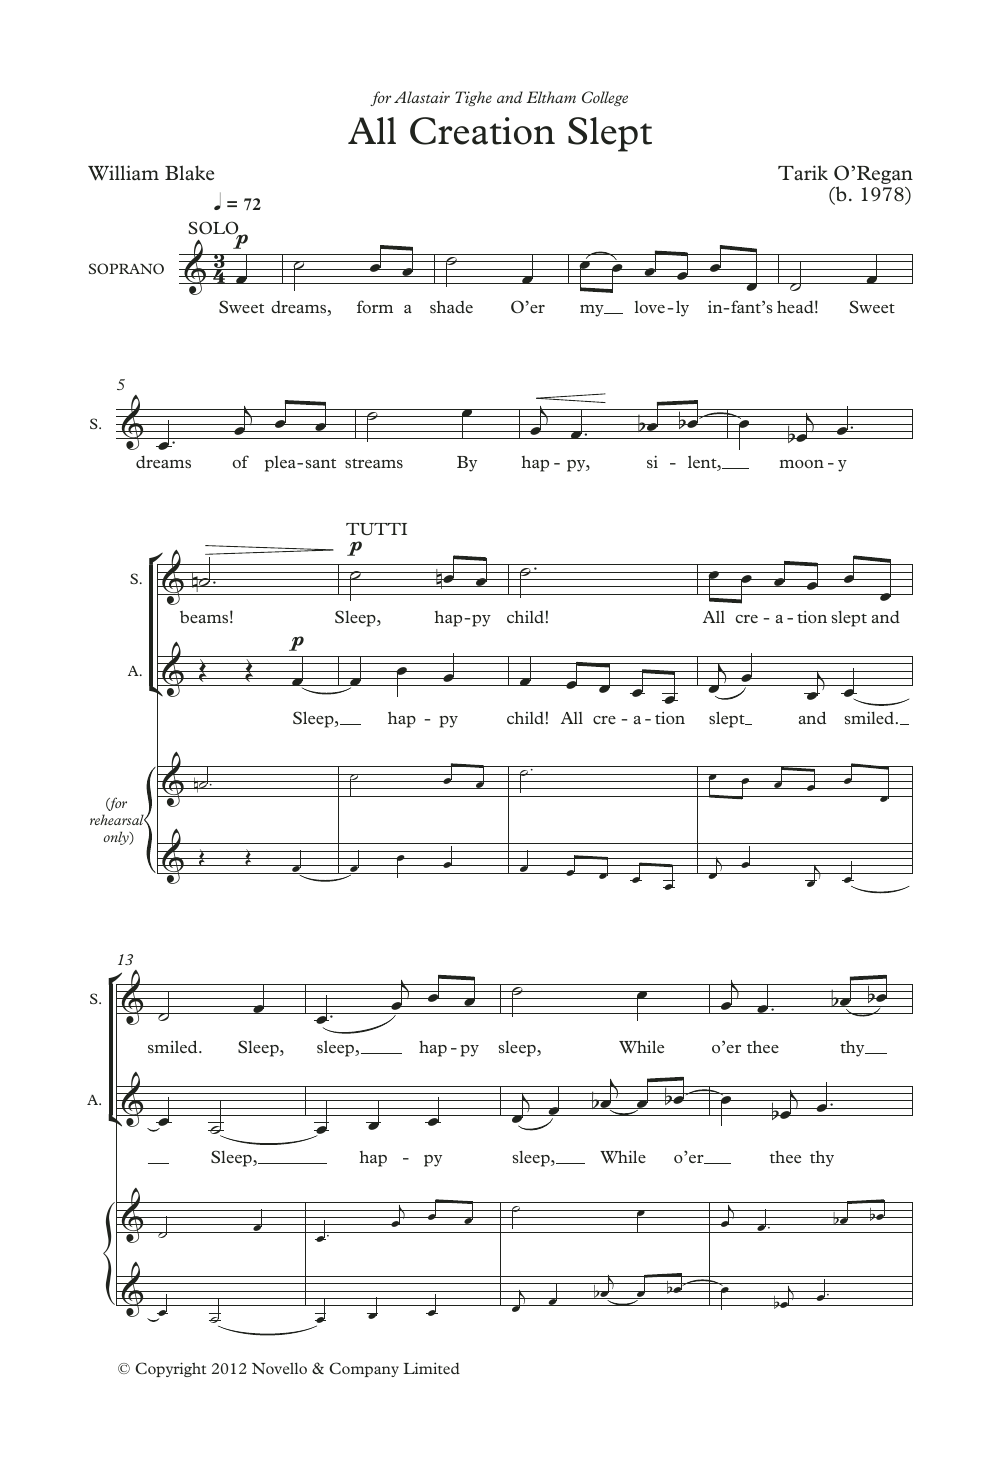 All Creation Slept Sheet Music